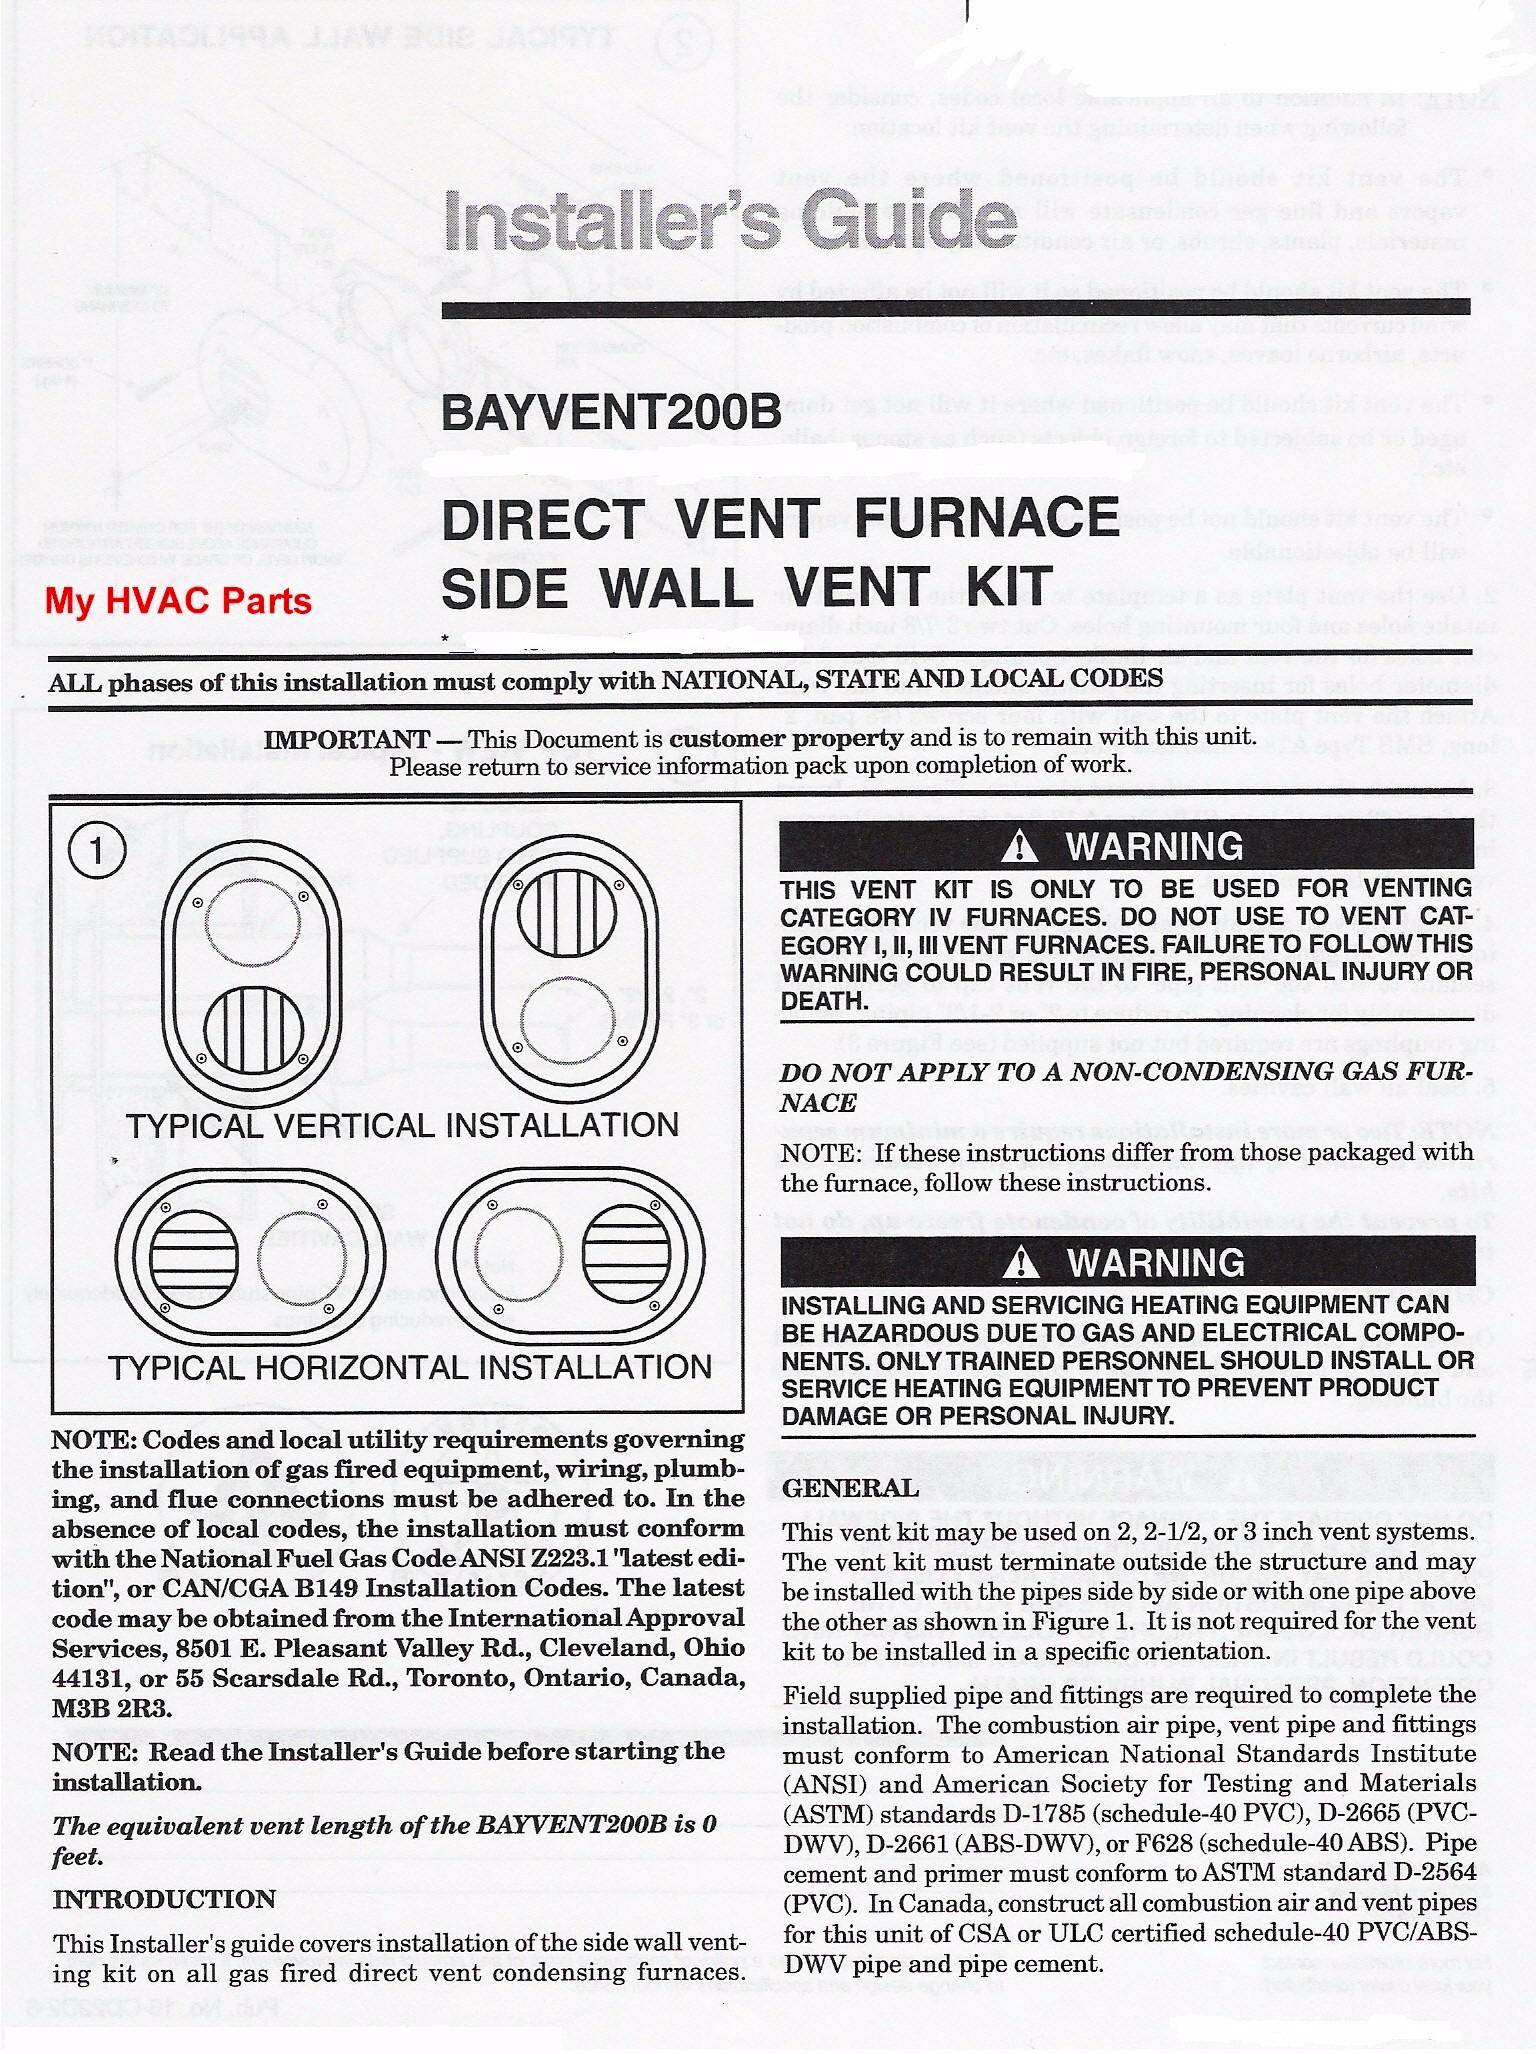 Sidewall Flue Vent Kit For 90 Furnaces Kit15815 Trane Xv80 2 Stagevariable Speed Gas Furnace Click Larger Image